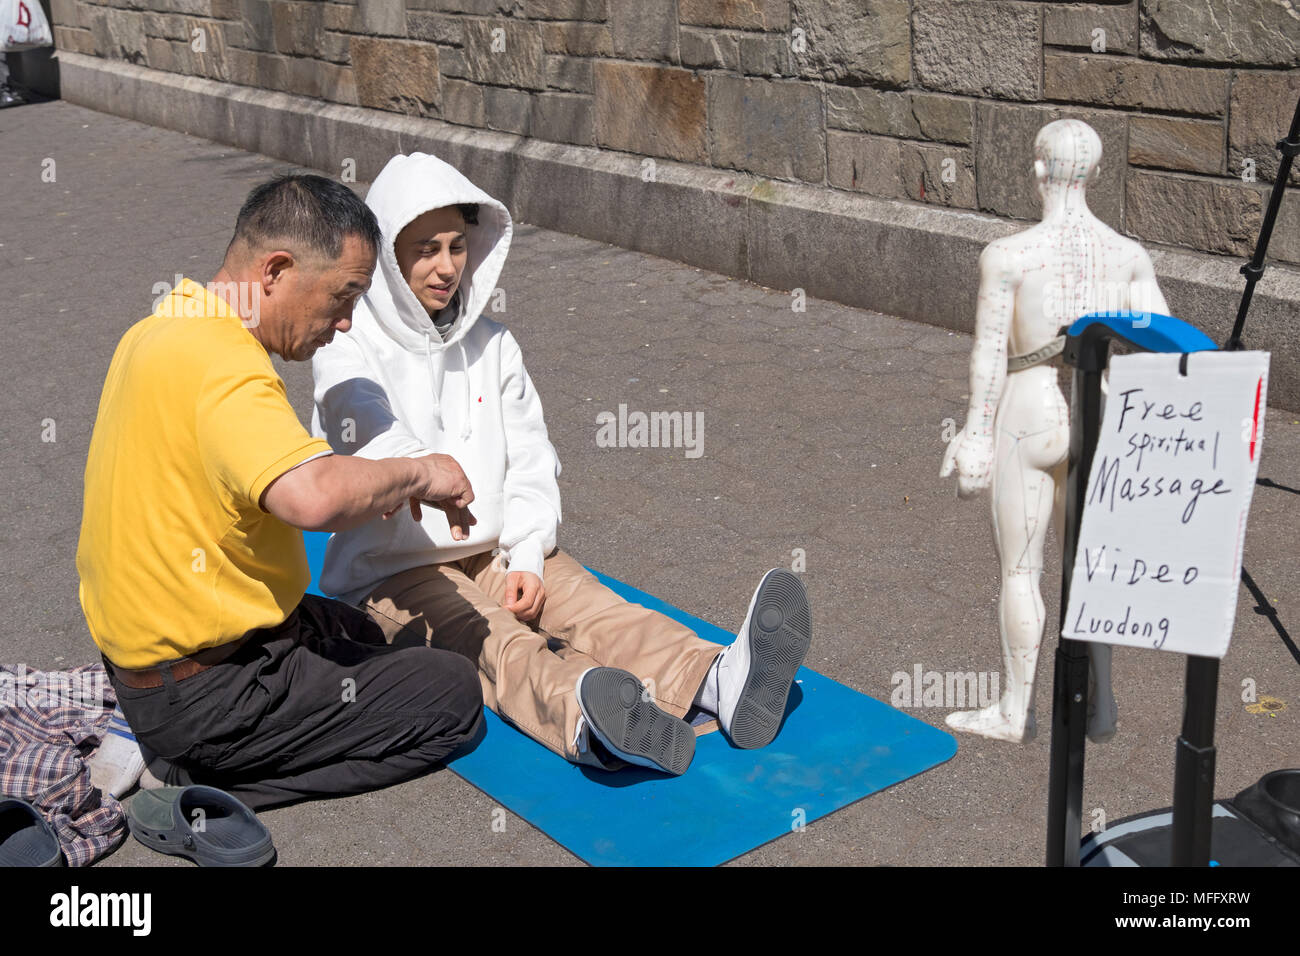 Luo Dong giving a free spiritual massage to a young lady in a hooded sweatshirt. In Union Square Park, Manhattan, New York City. - Stock Image